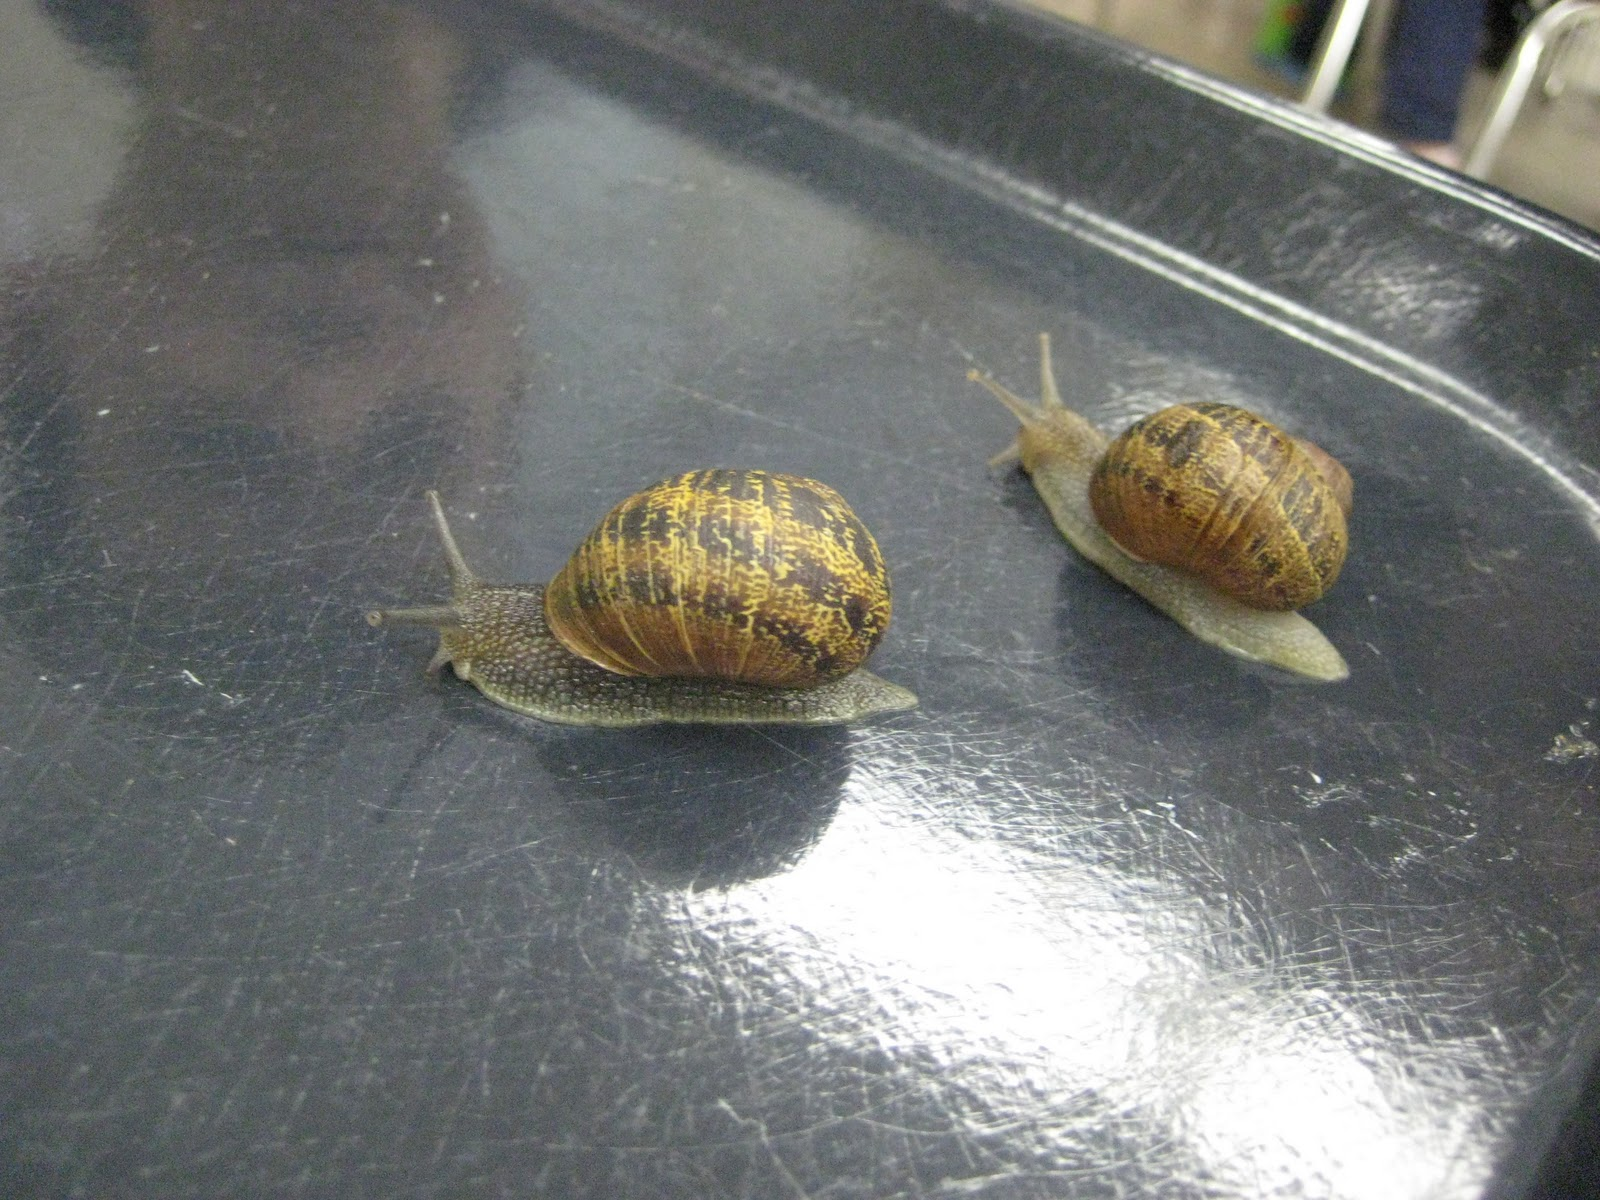 Finally In First Snail Olympics